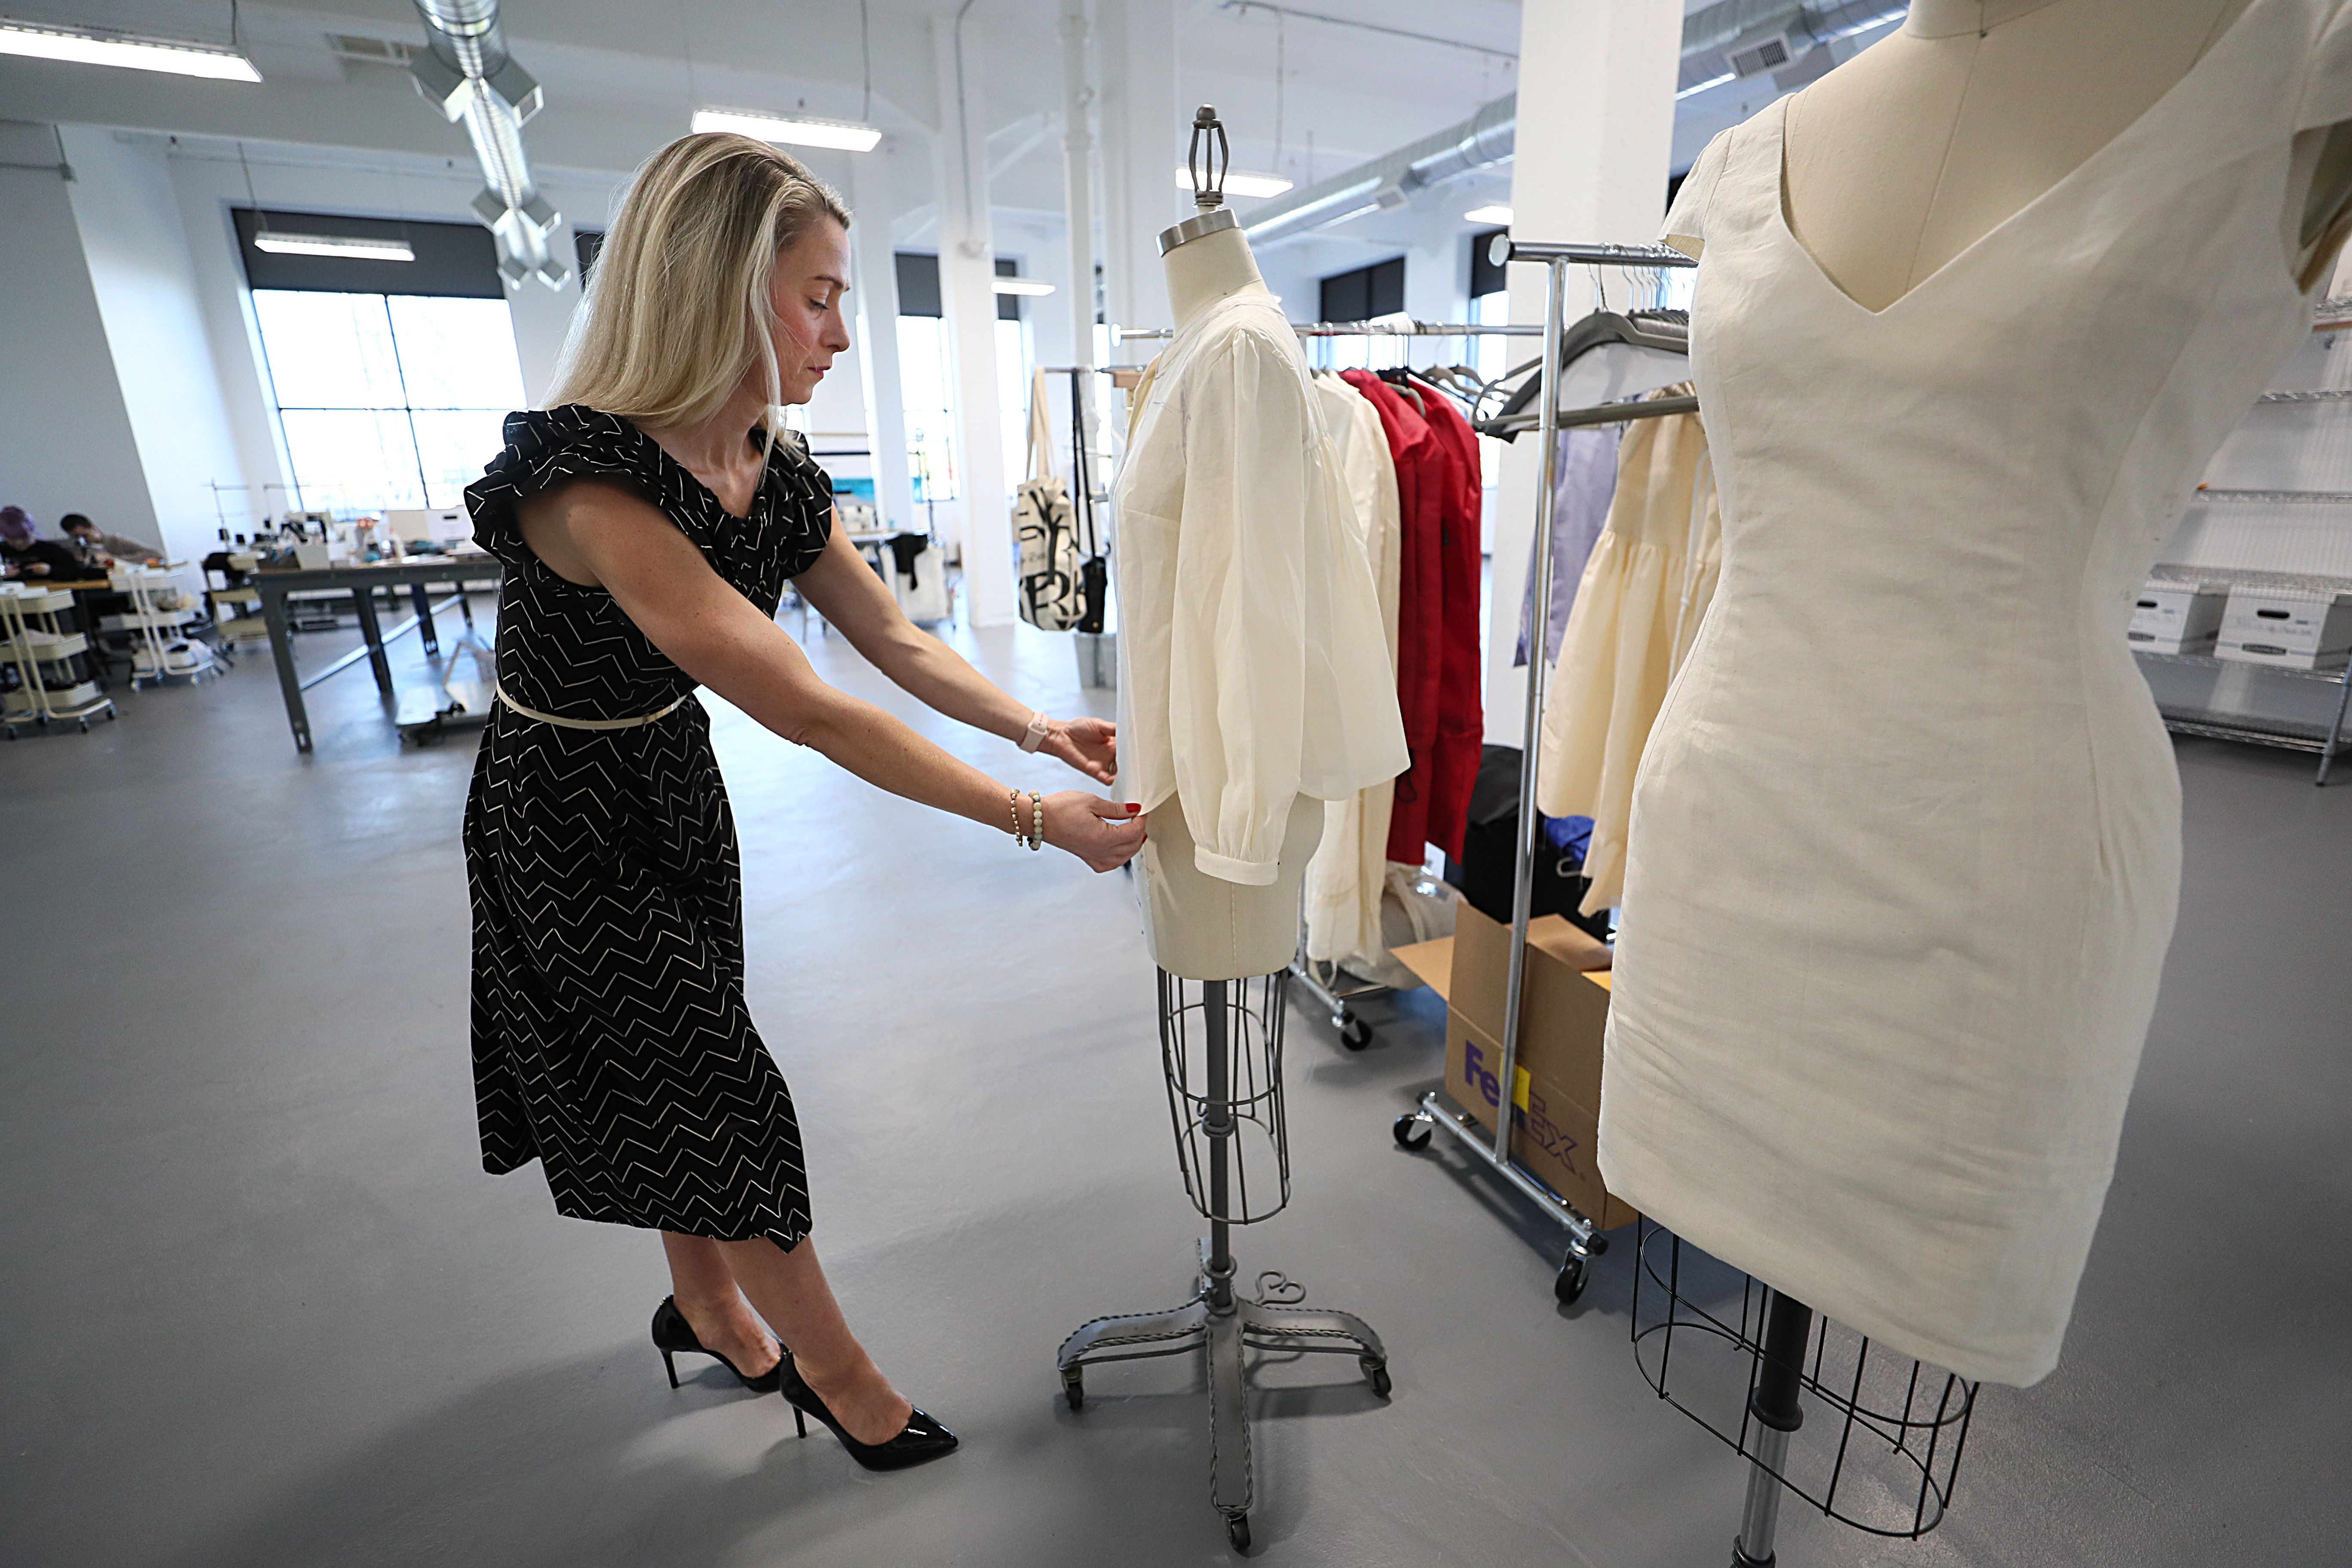 Fashion Incubator Aims To Be A One Stop For New Designers The Boston Globe